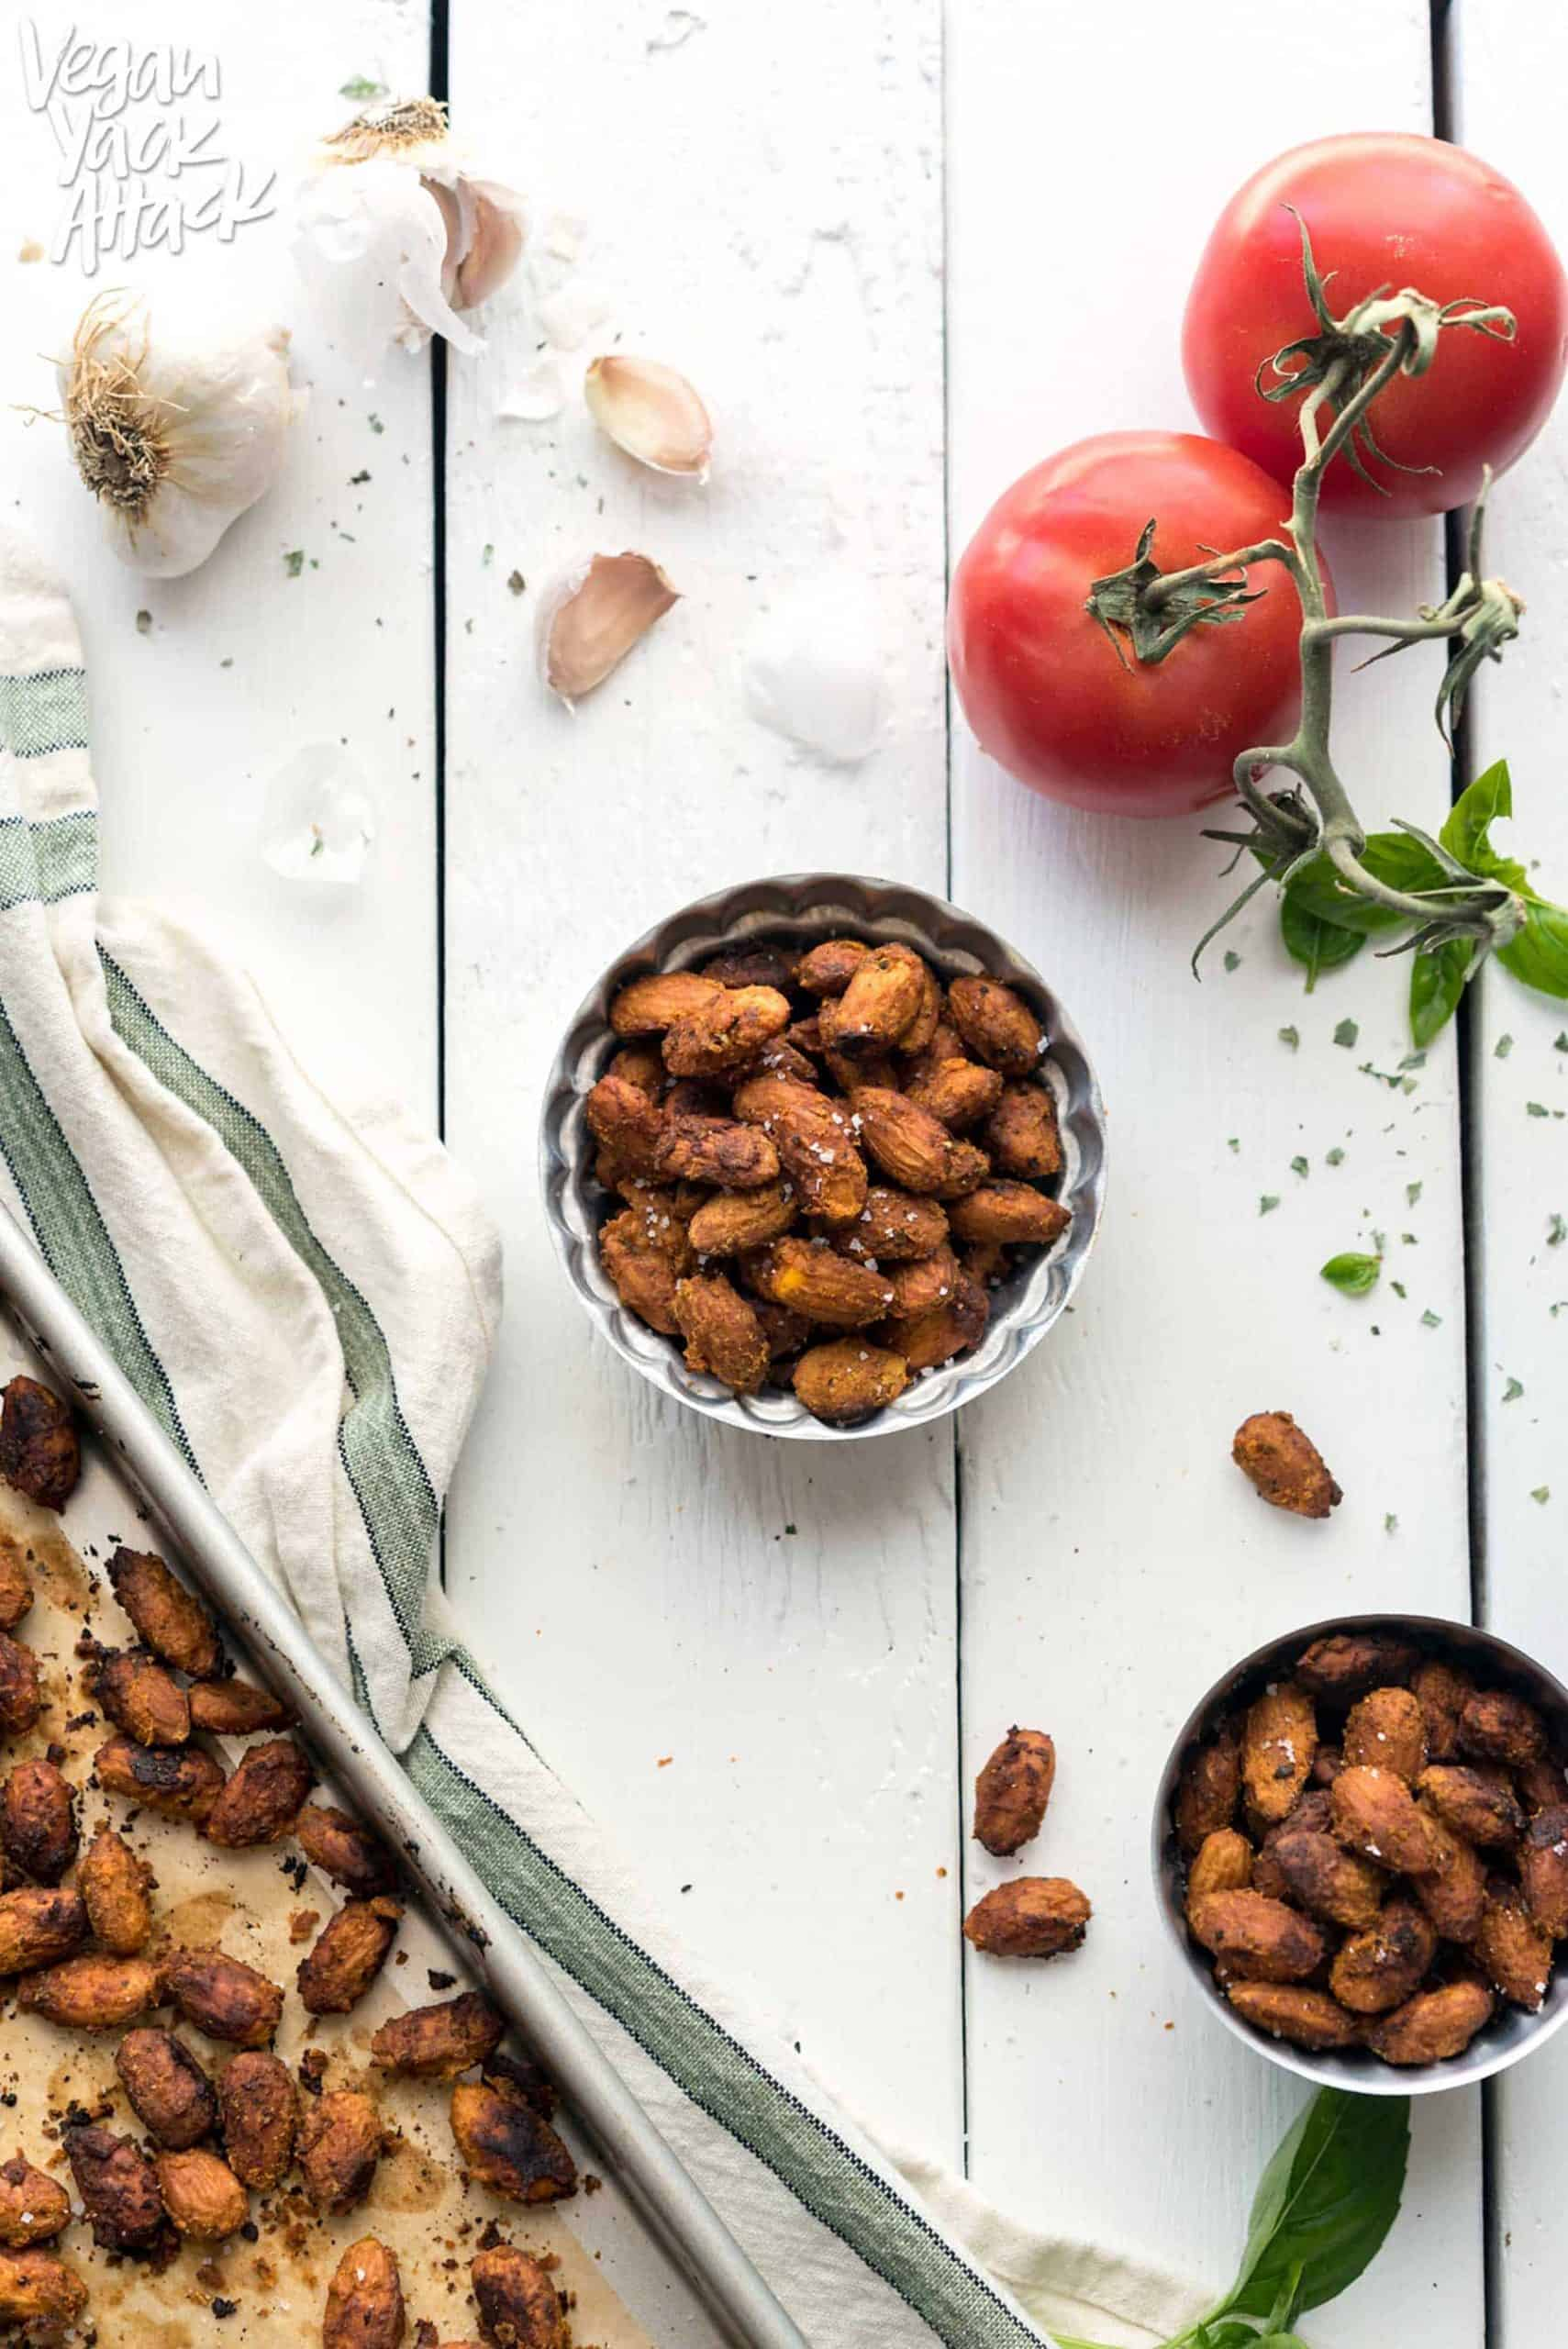 Image of pizza-roasted almonds in two small bowls on a white table